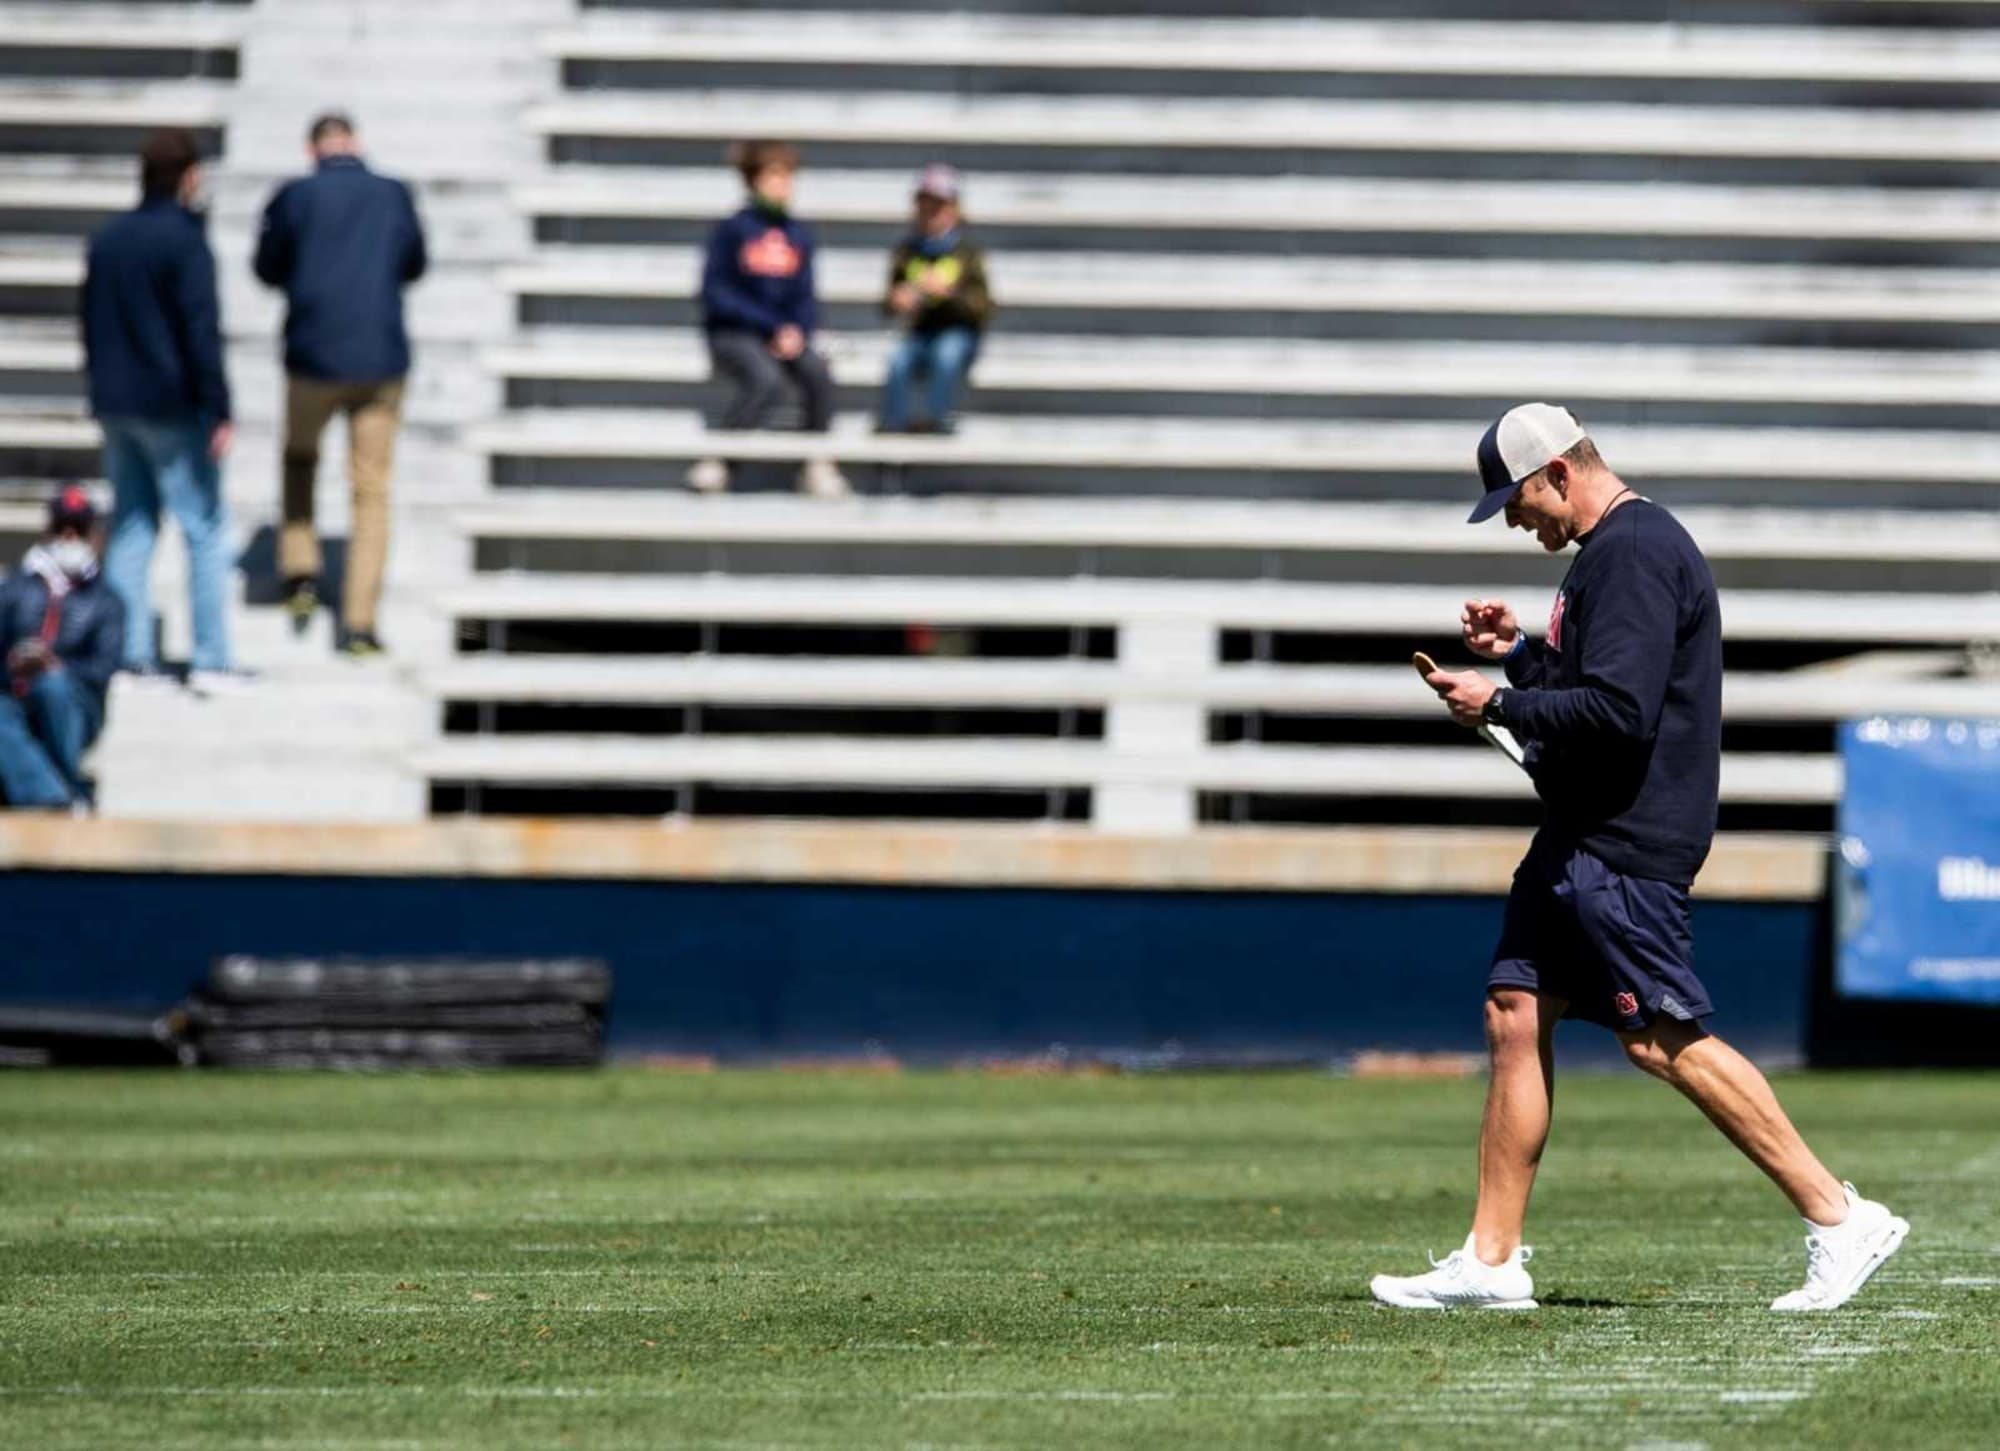 Auburn football: Bryan Harsin only here on Plains to win titles